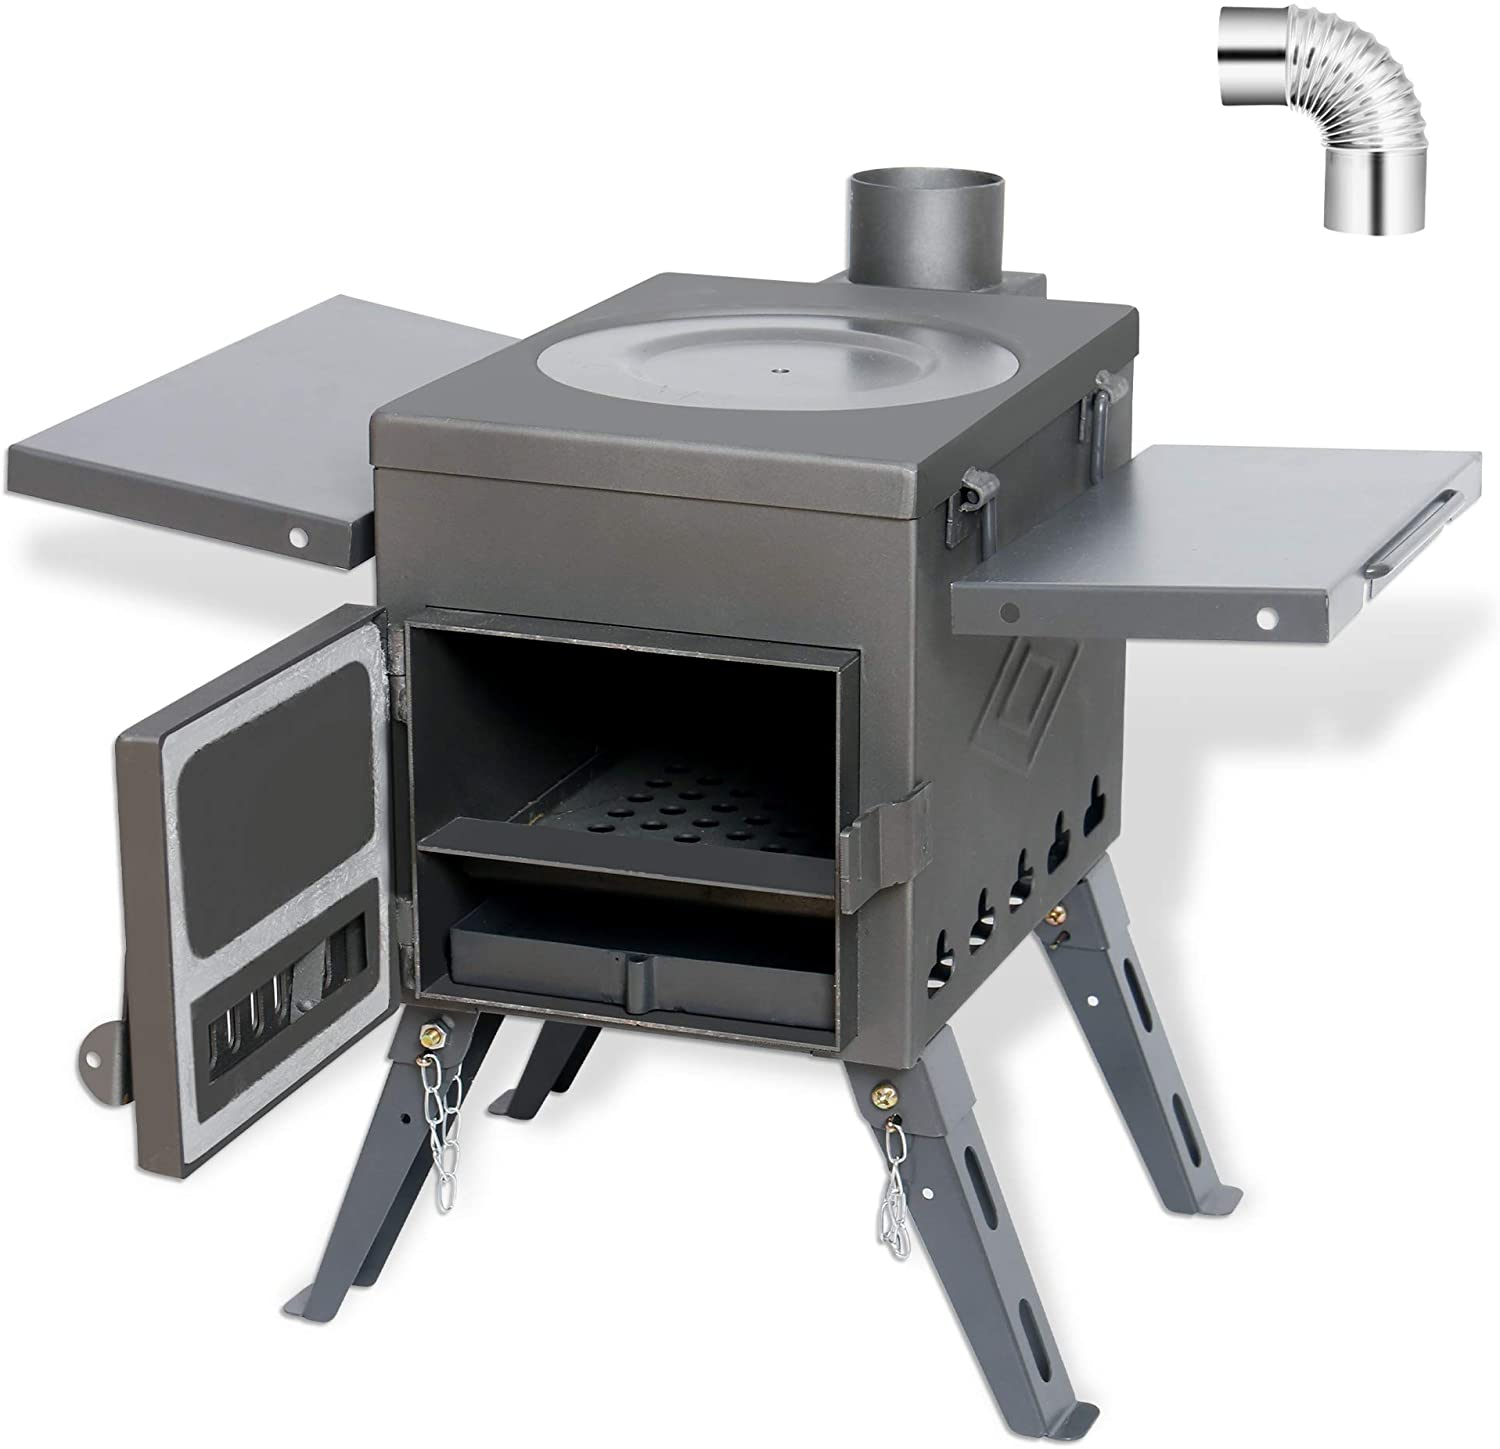 Incredibly portable palm-sized camping stove Robens Firefly Stove